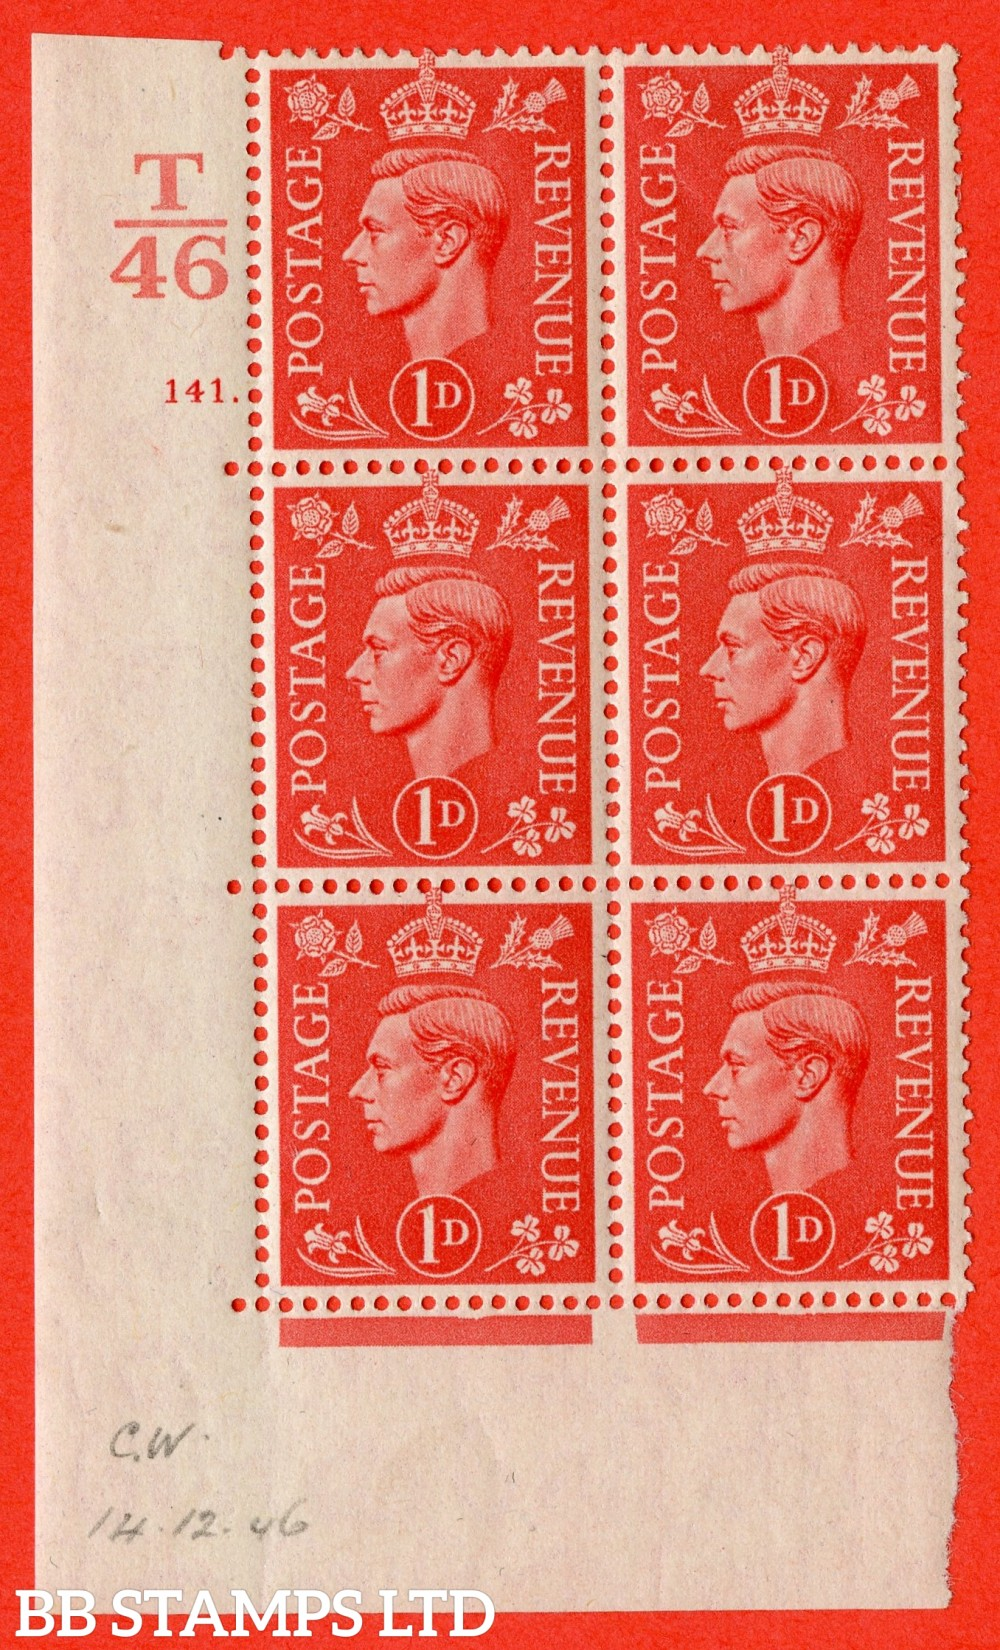 """SG. 486. Q5. 1d Pale scarlet. A fine lightly mounted mint """" Control T46  cylinder 141 dot """" control block of 6 with perf type 5 E/I."""